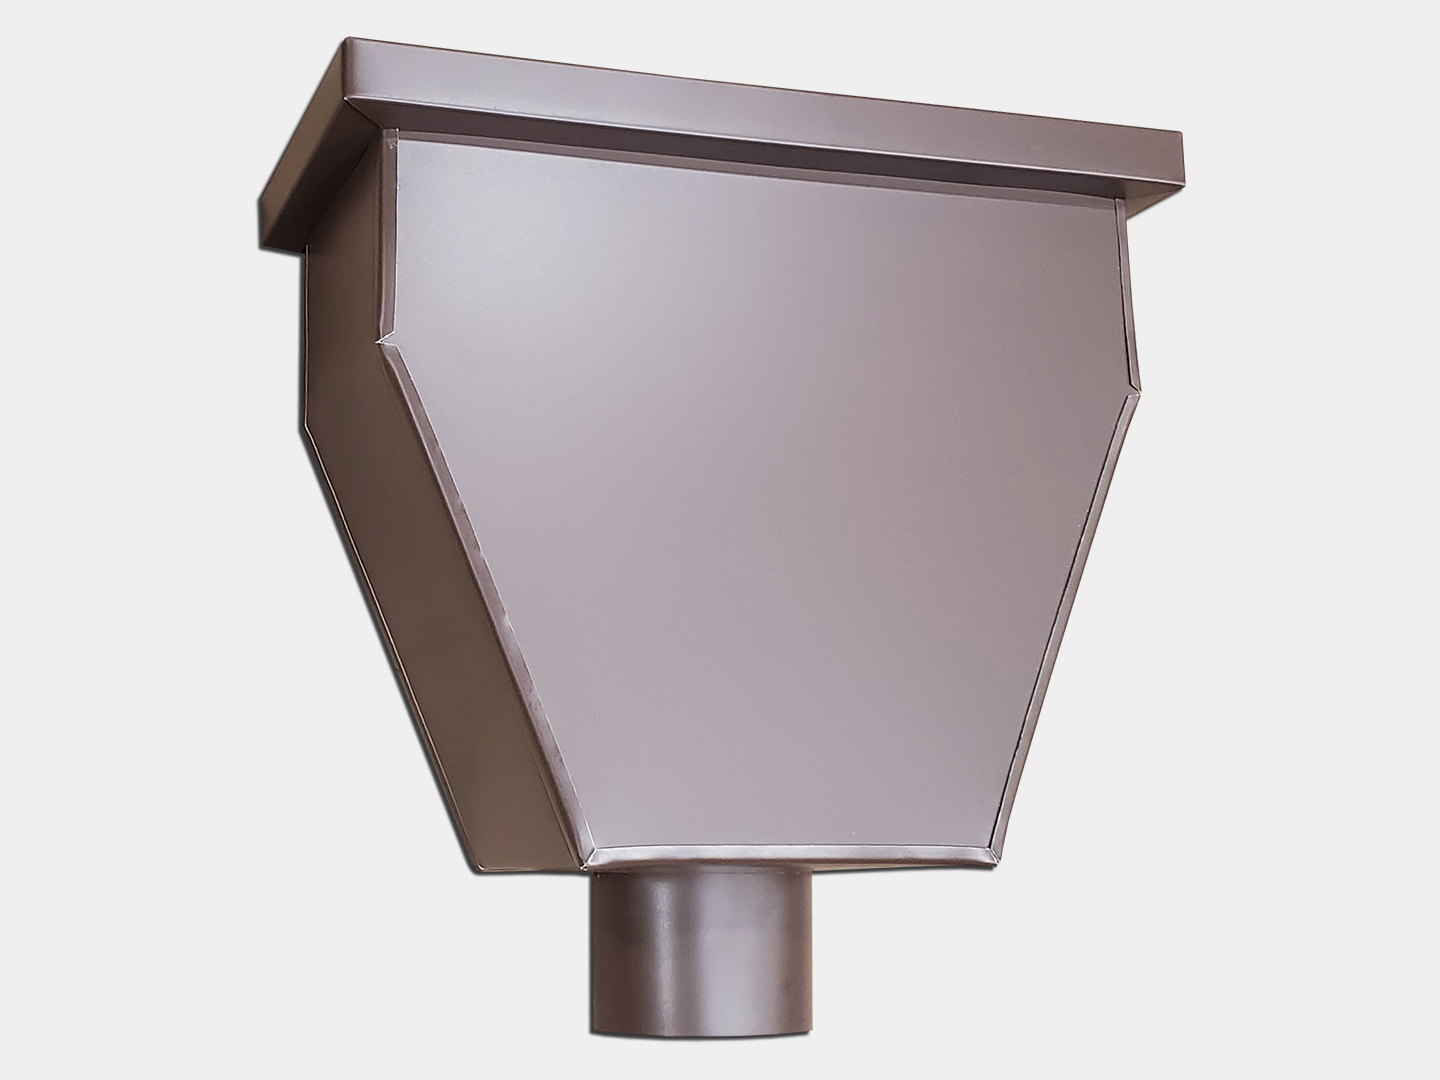 The commercial gutter leader head - royal brown aluminum